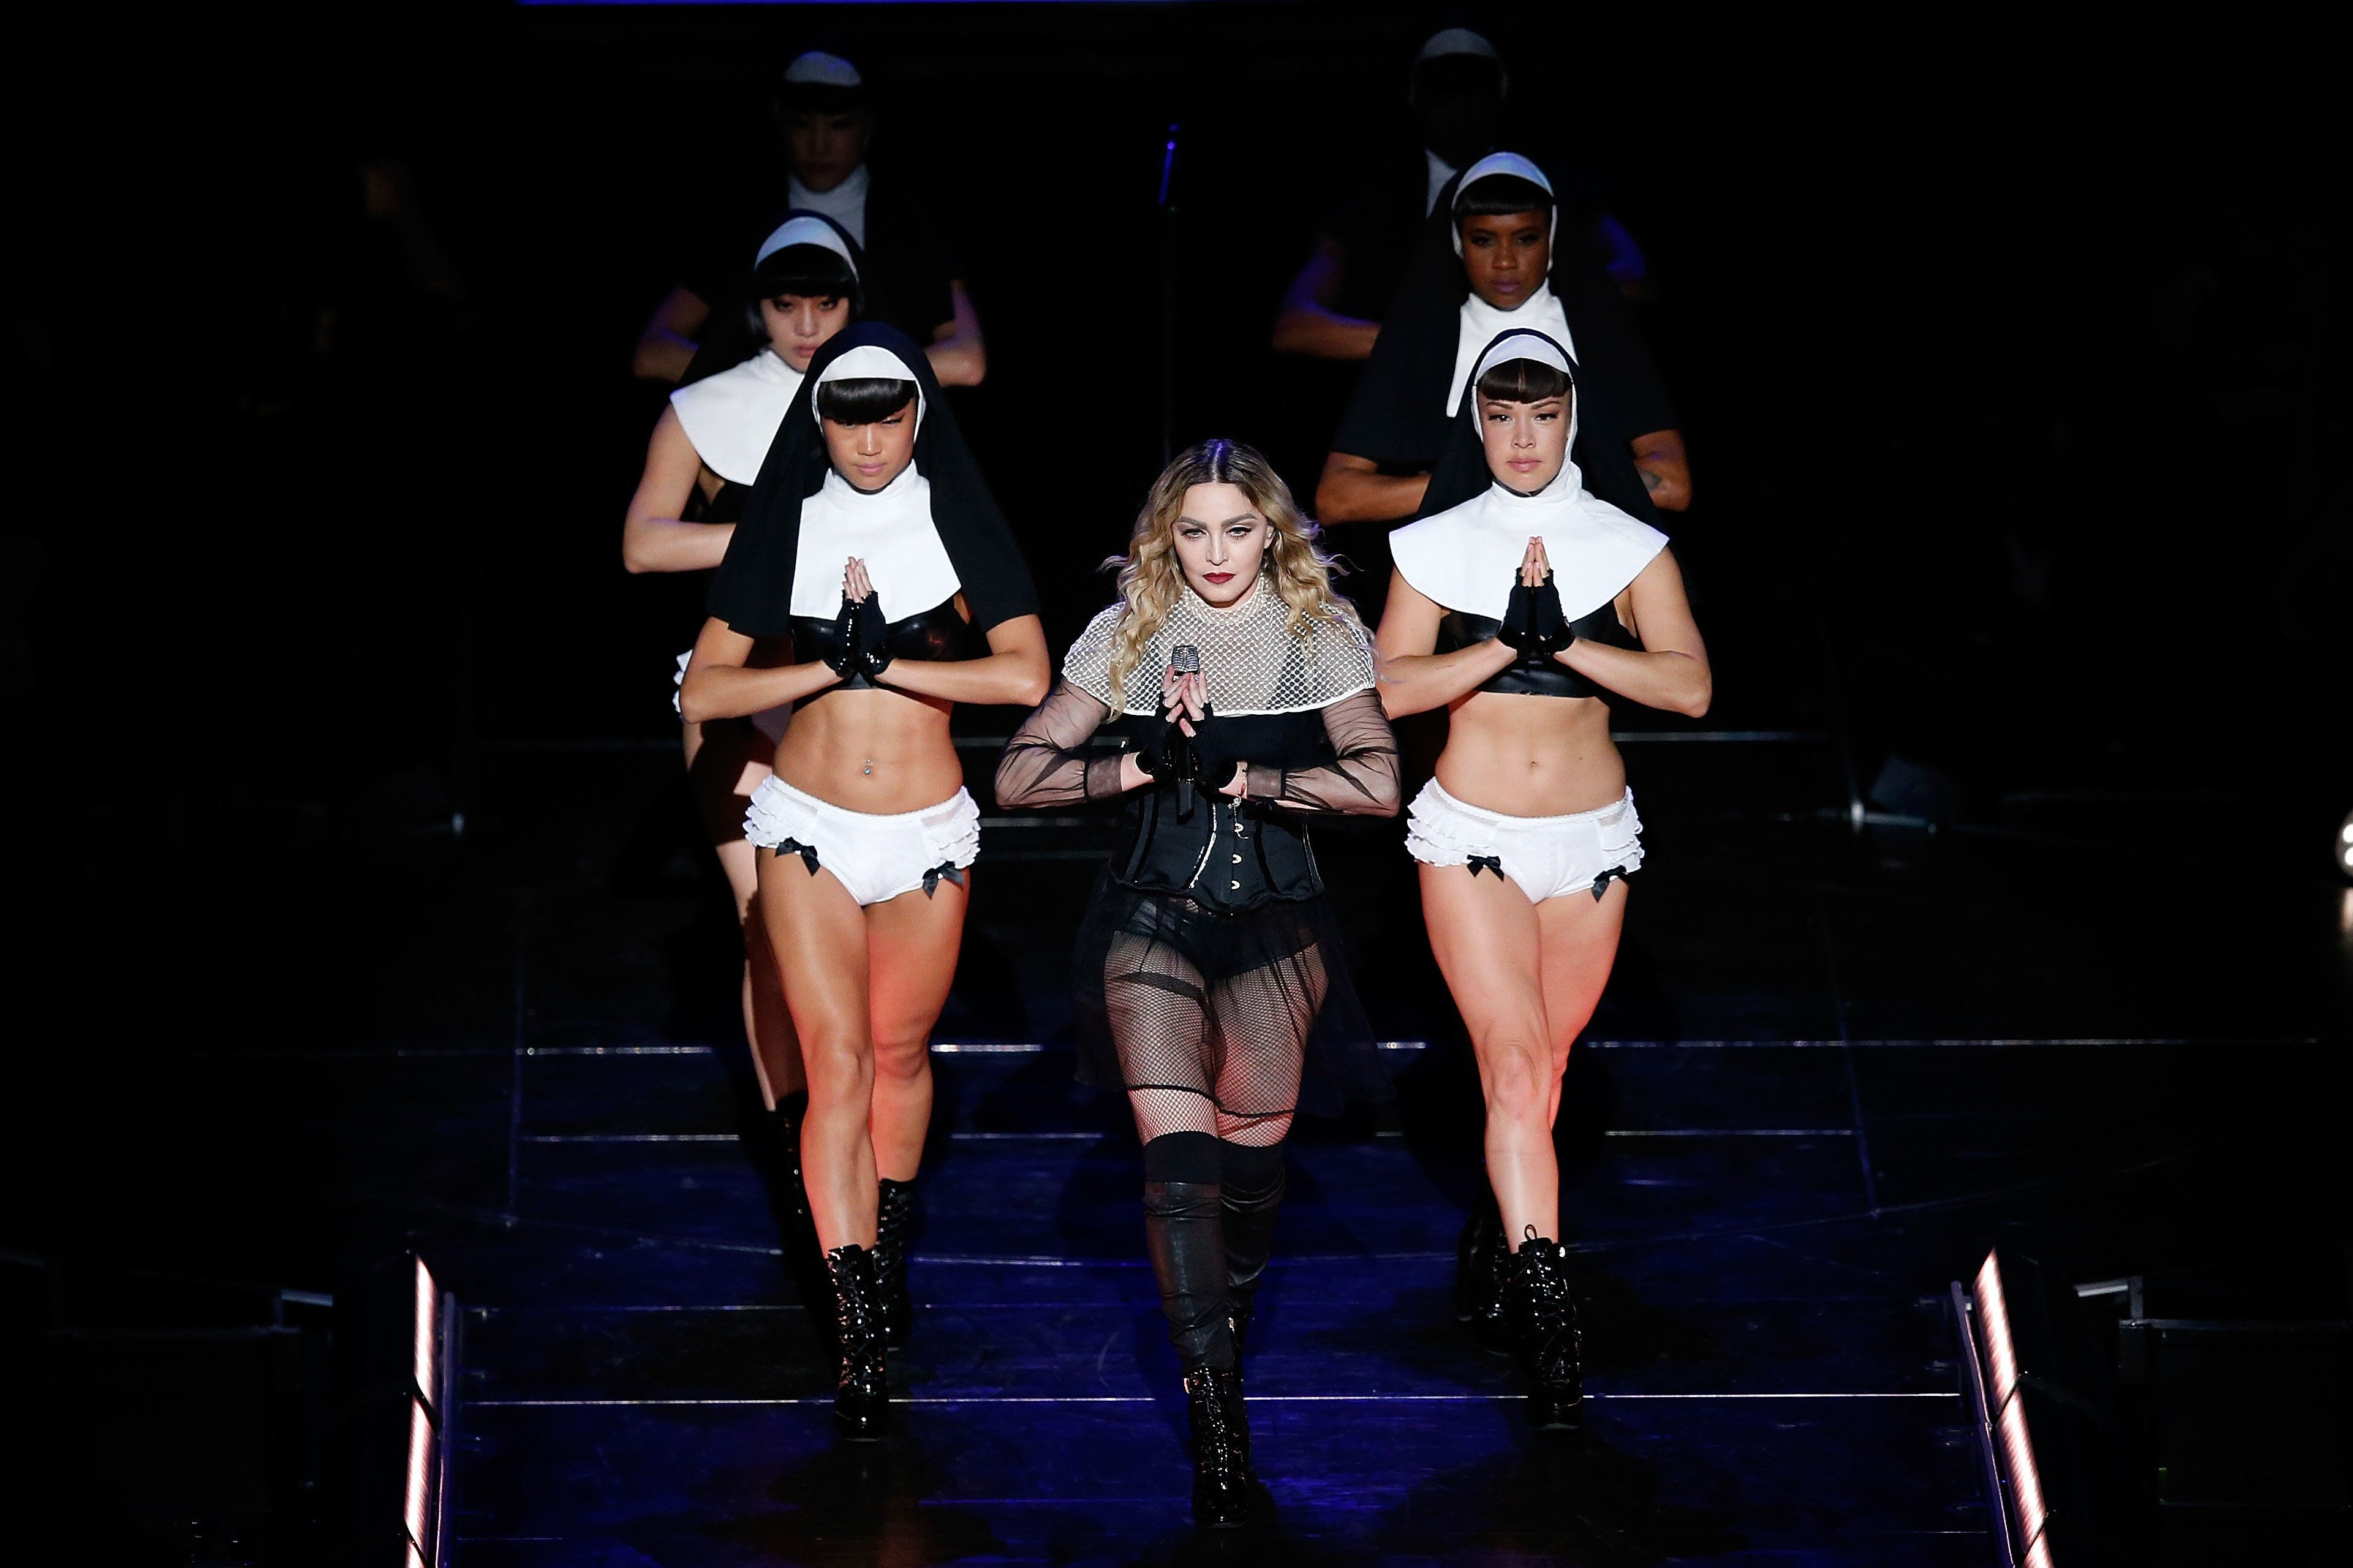 Madonna At 60: Don't Write Her Off As An 80s Nostalgia Act, She Never Stopped Causing A Commotion